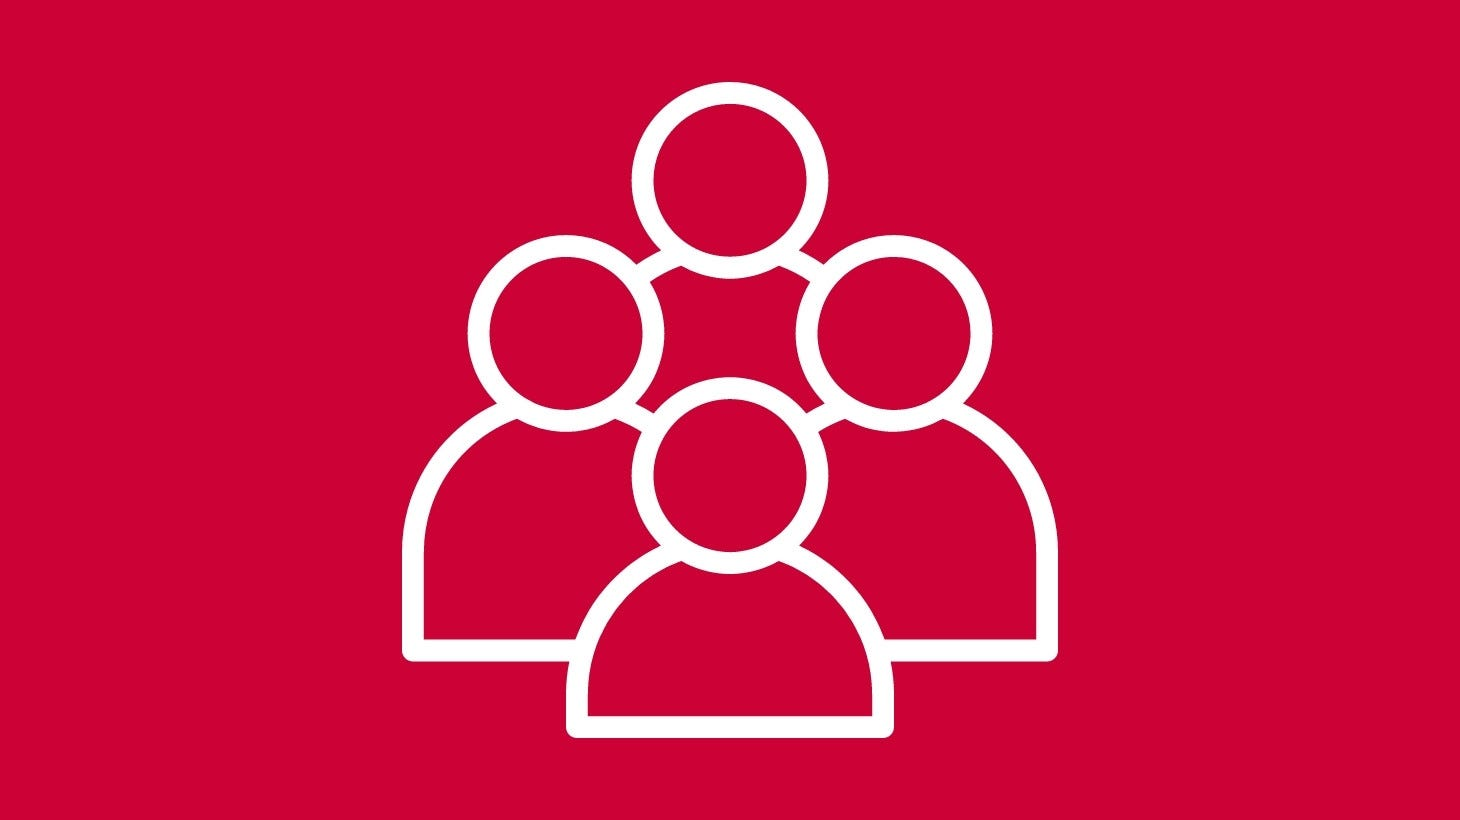 People Icons on red background